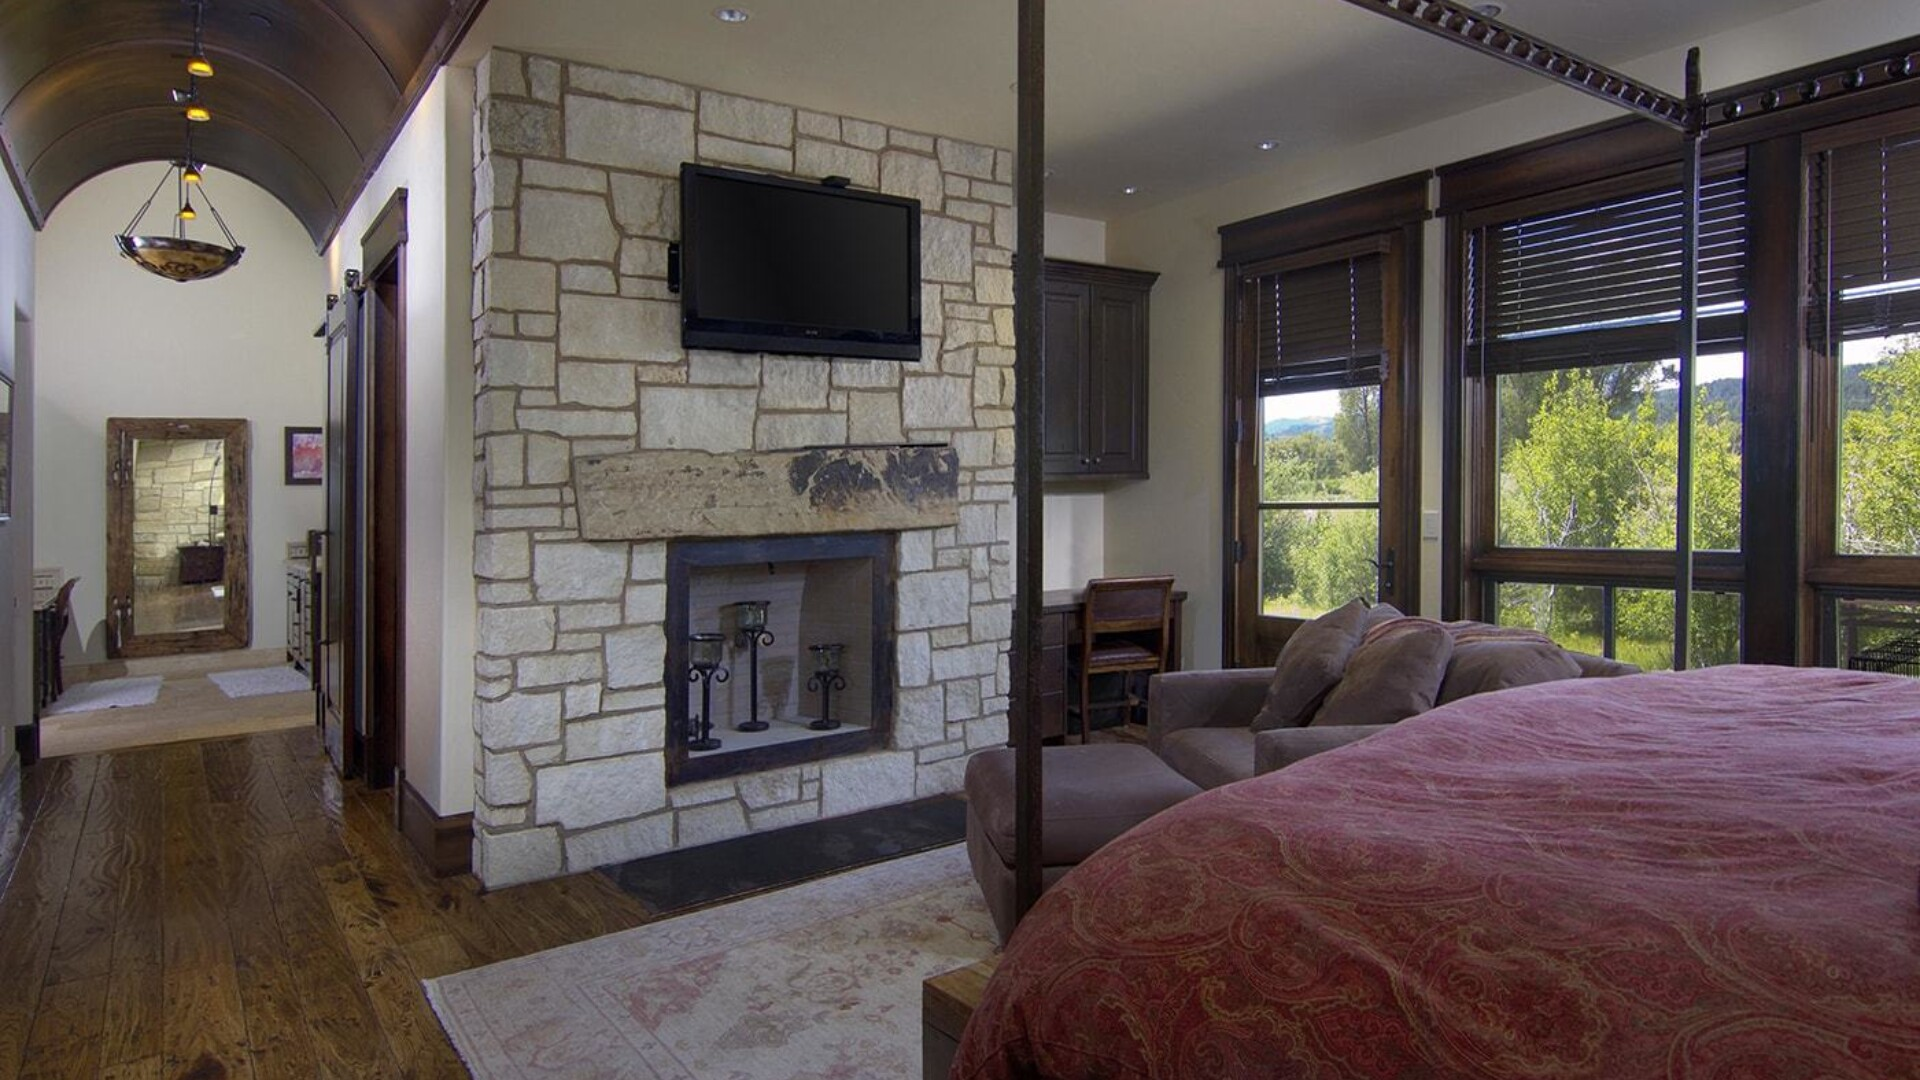 stone fireplace in a bedroom in a mansion in jackson hole wyoming